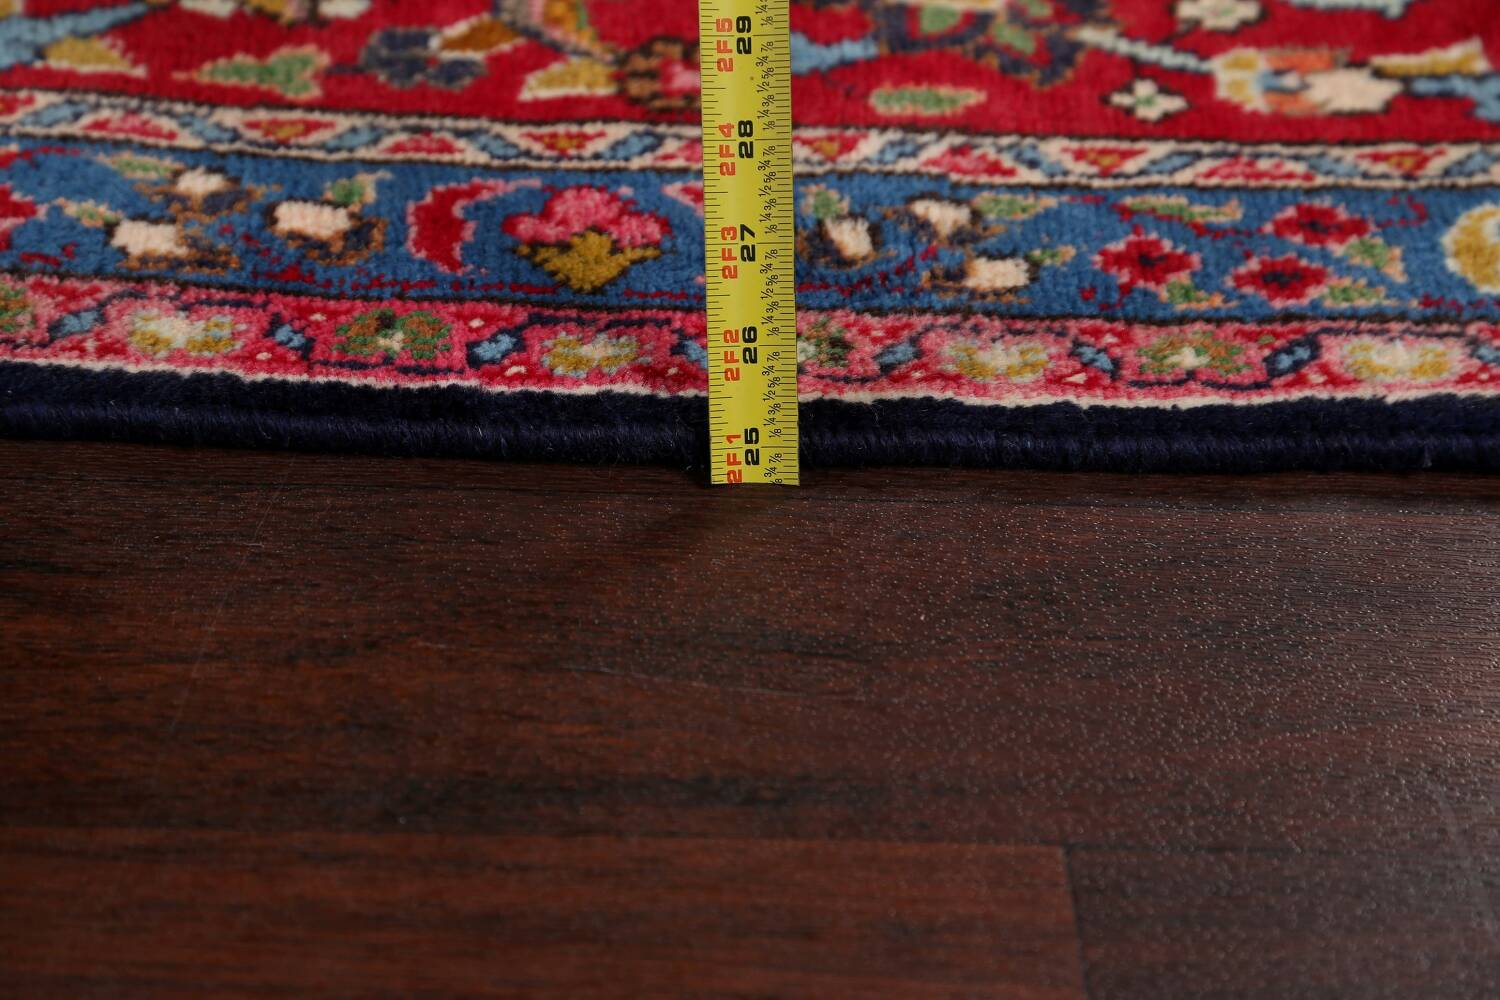 Navy Blue Floral Mashad Persian Area Rug 9x13 image 19